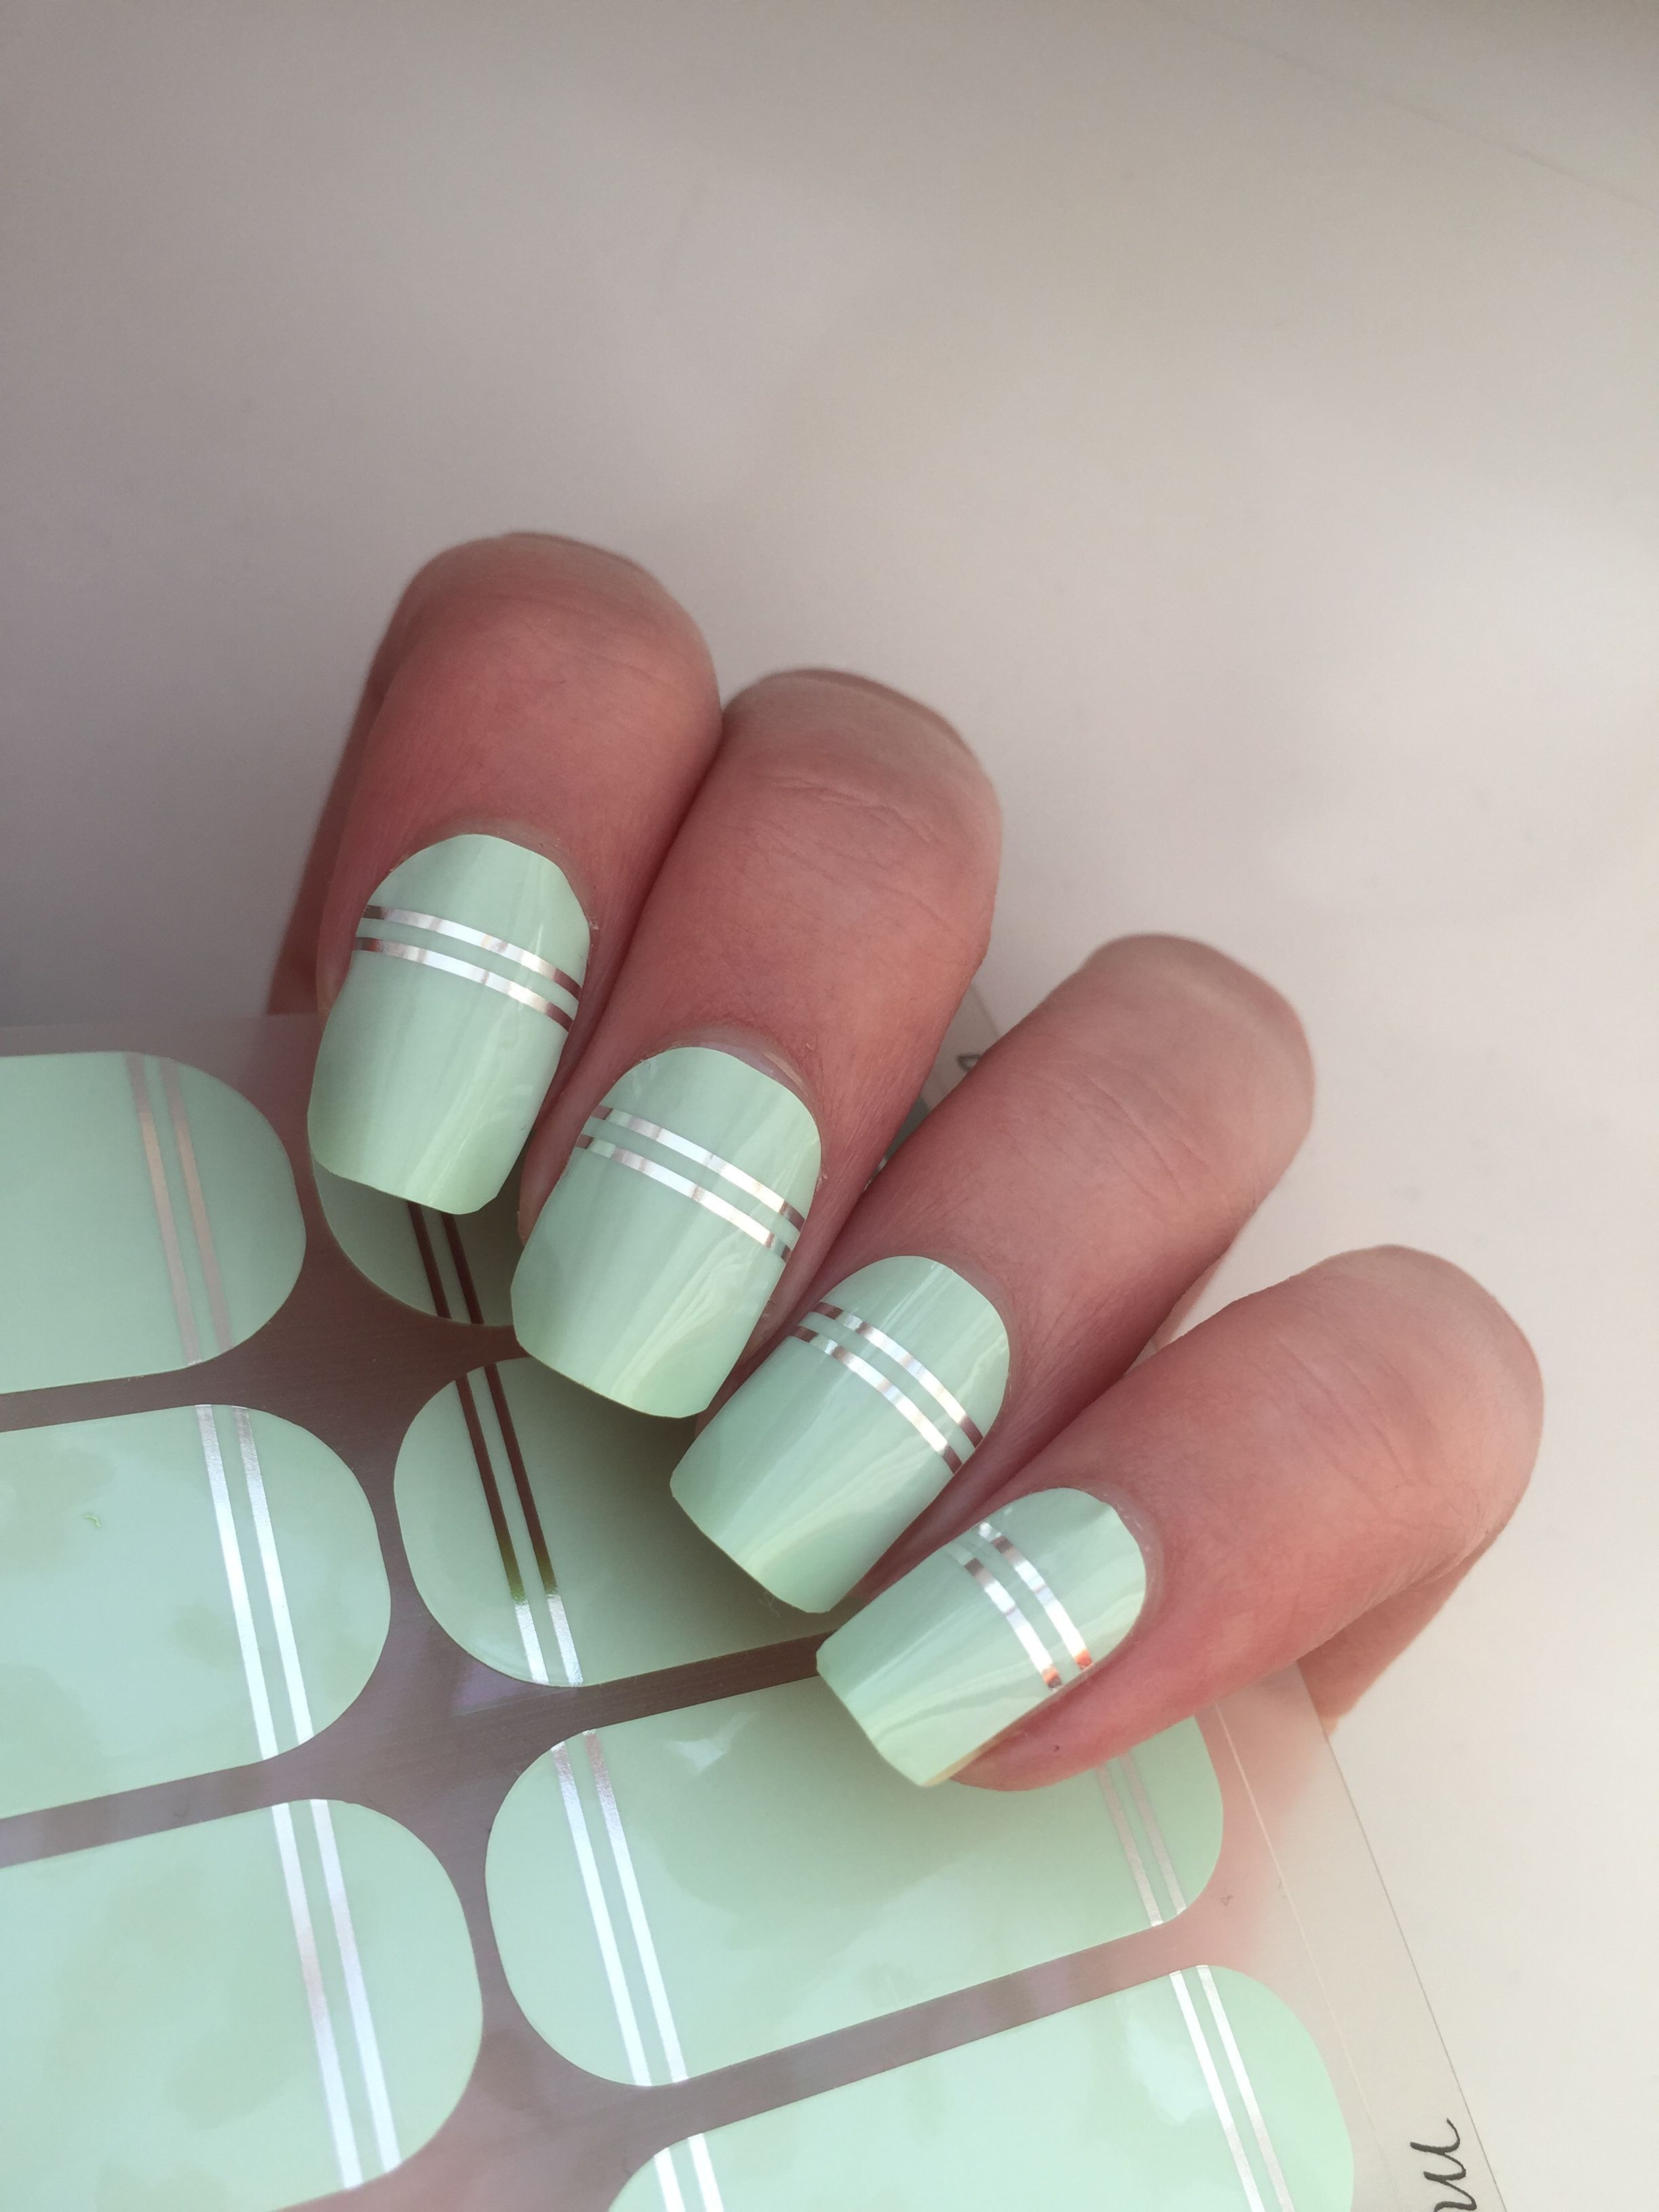 Nails Design Double Mint Nail Wraps Takes Minutes To Apply Lasts Up To 2 Weeks With Peel Off Removal In Seconds No Toxic Mint Nails Manicure Silver Nails